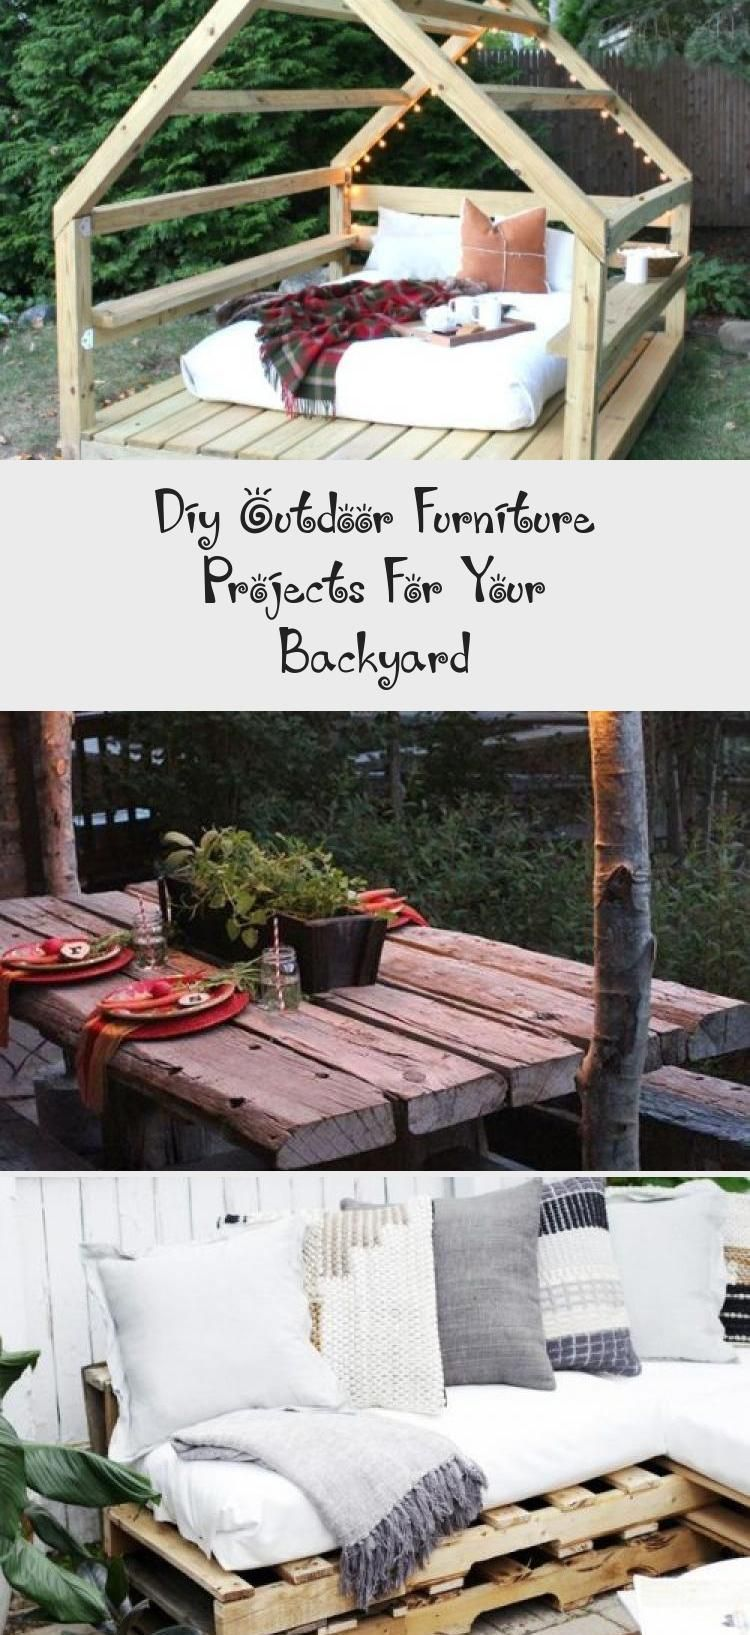 Diy Outdoor Furniture Projects For Your Backyard #balconybar This DIY balcony bar is perfect for small outdoor spaces in condos and apartments #homediyGarden #Smallhomediy #homediyDeko #Tinyhomediy #homediyRental #balconybar